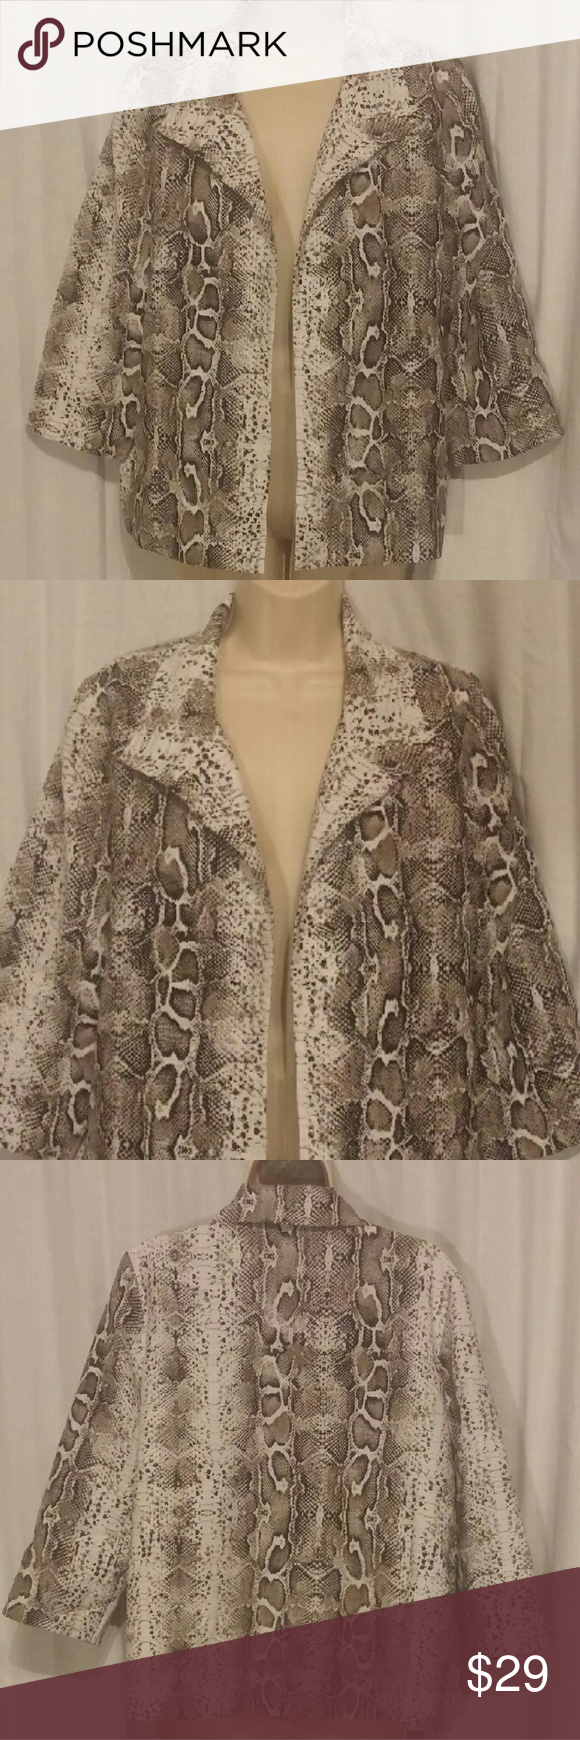 """Chico's Reptile Print Open Front Jacket 1 S All clothes are in excellent used condition. No stains or holes.  Content: 67% Rayon 21% Nylon 12% Nylon lining: 100% polyester.  Bust: 40""""  Length: 24""""  Posh7 Chico's Jackets & Coats Blazers"""